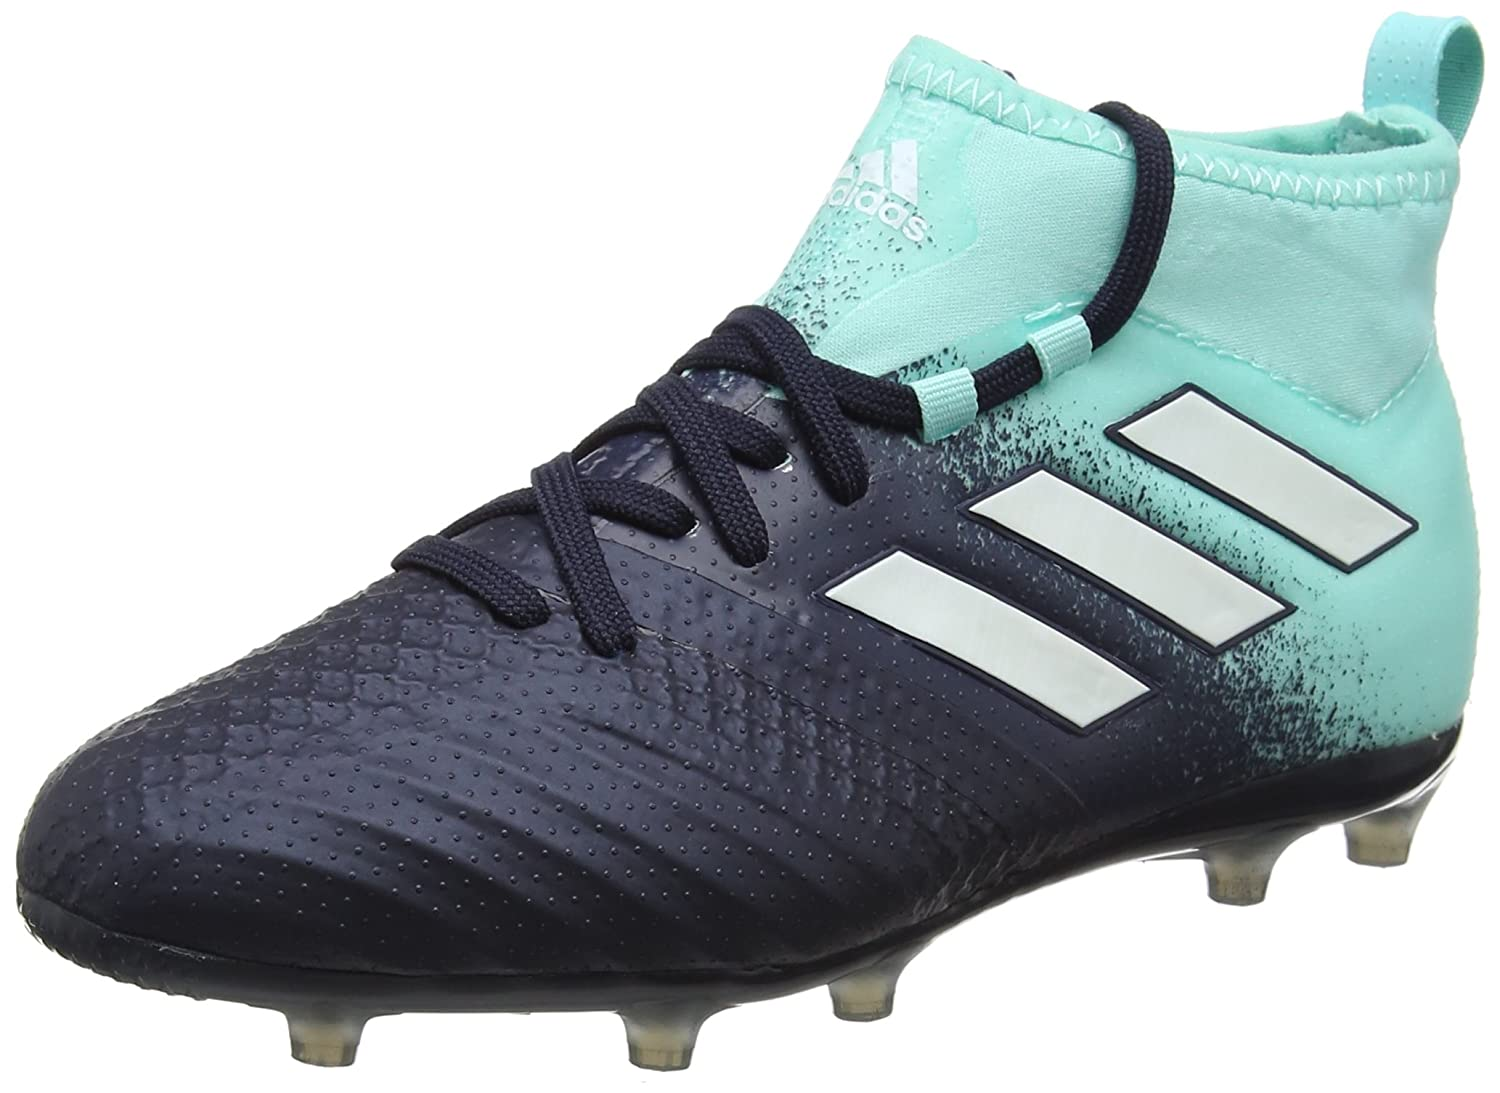 Adidas Ace 17.1 FG, Chaussures Football de Football Chaussures Mixte Enfant 36 2/3 EU|Bleu (Energy Aqua/Legend Ink/Mystery Ink) db4851